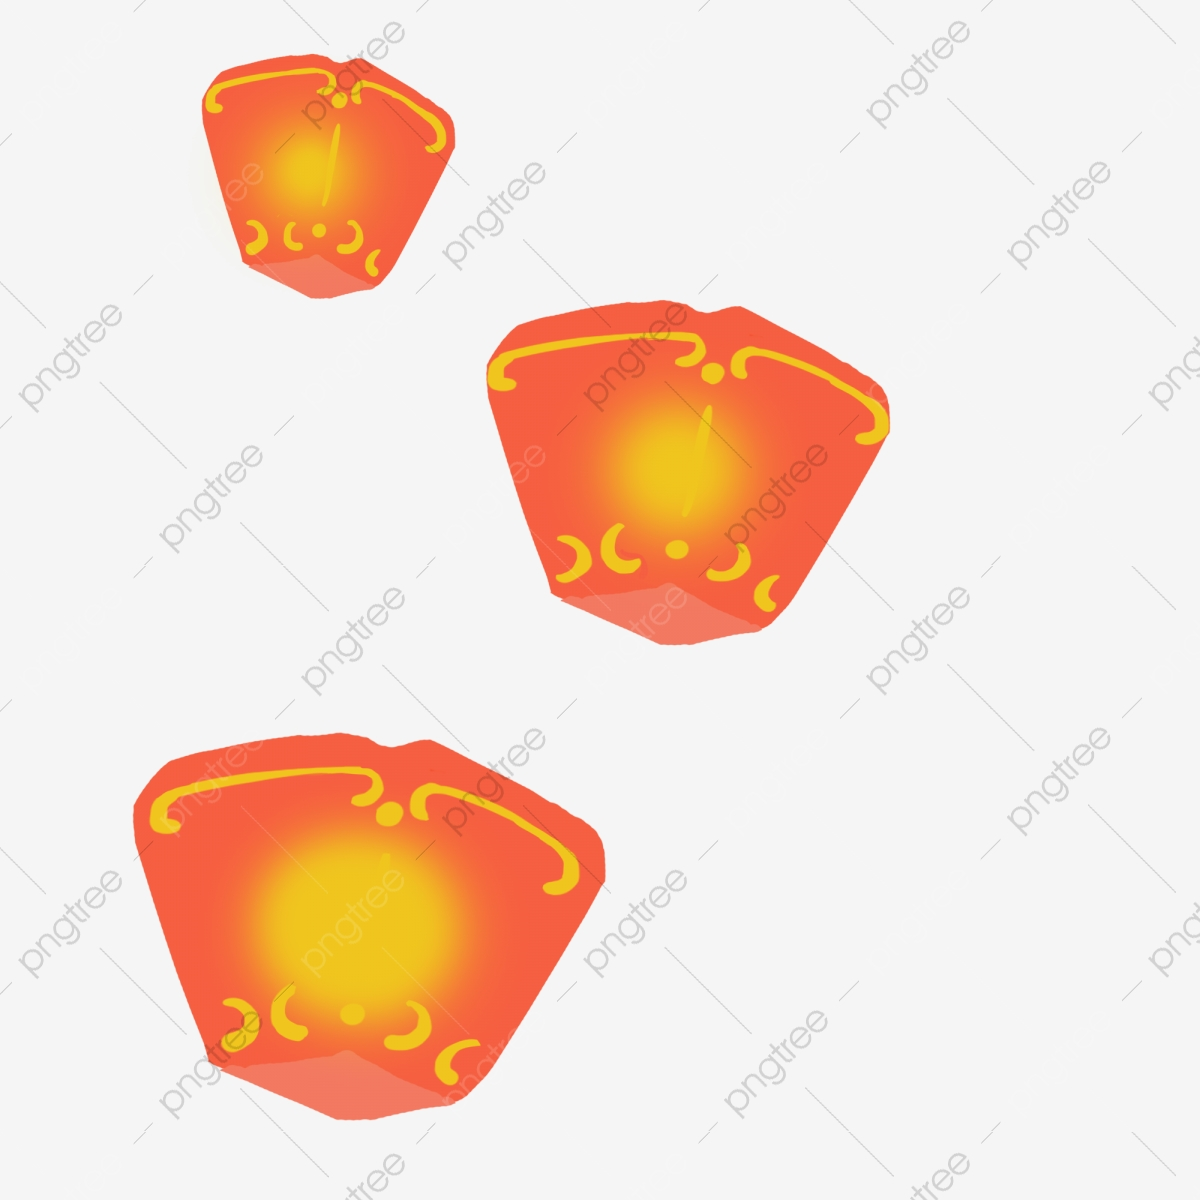 Floating Lantern Hand Drawn Illustration Floating Lanterns Three Lanterns Festive Lanterns Png Transparent Clipart Image And Psd File For Free Download